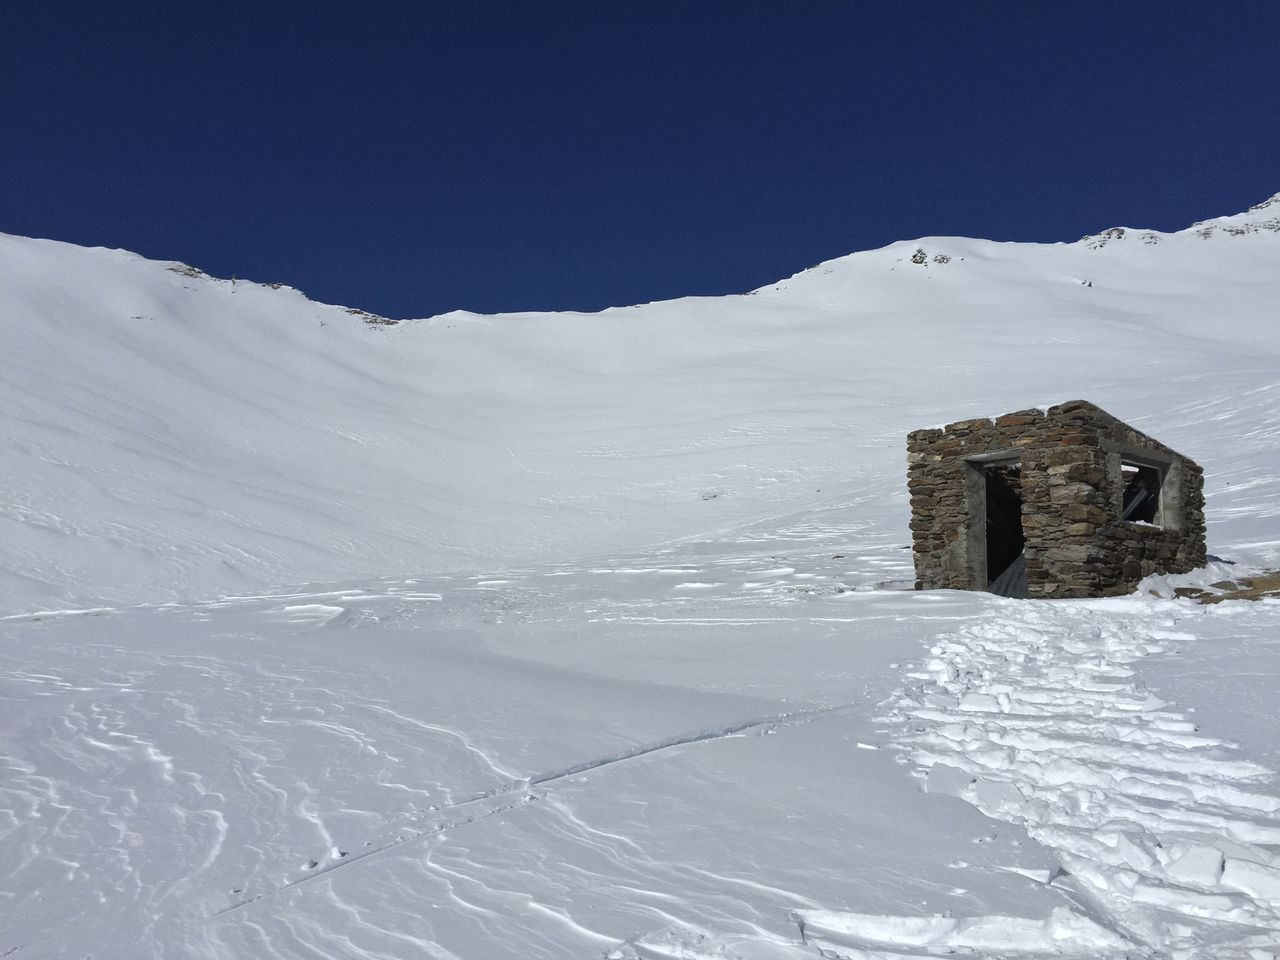 Low Angle View Of Abandoned House On Snowy Hill Against Sky